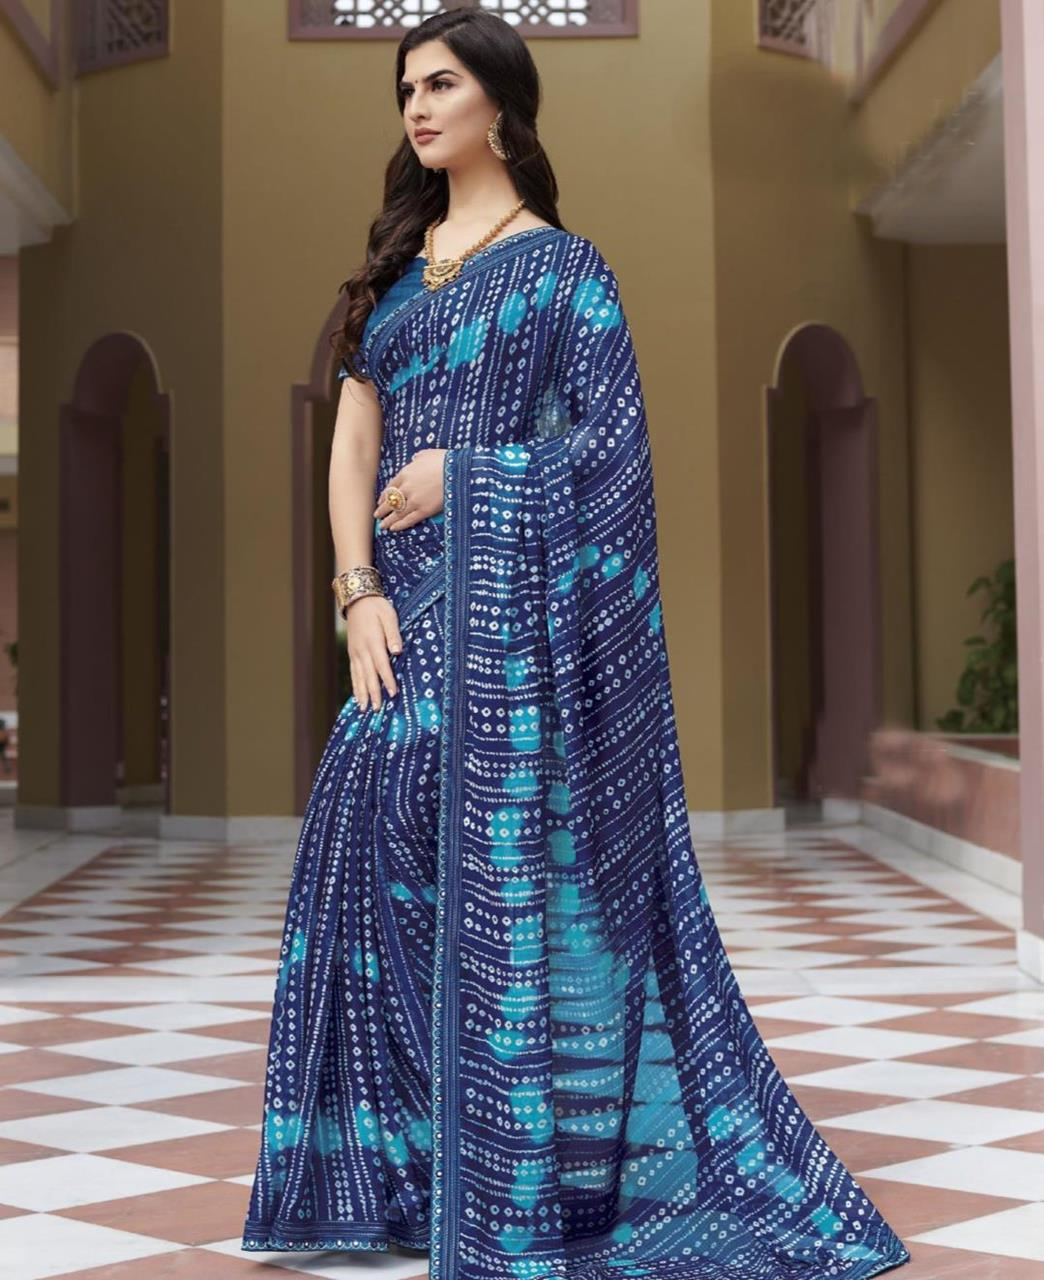 Lace Chiffon Saree in Blue